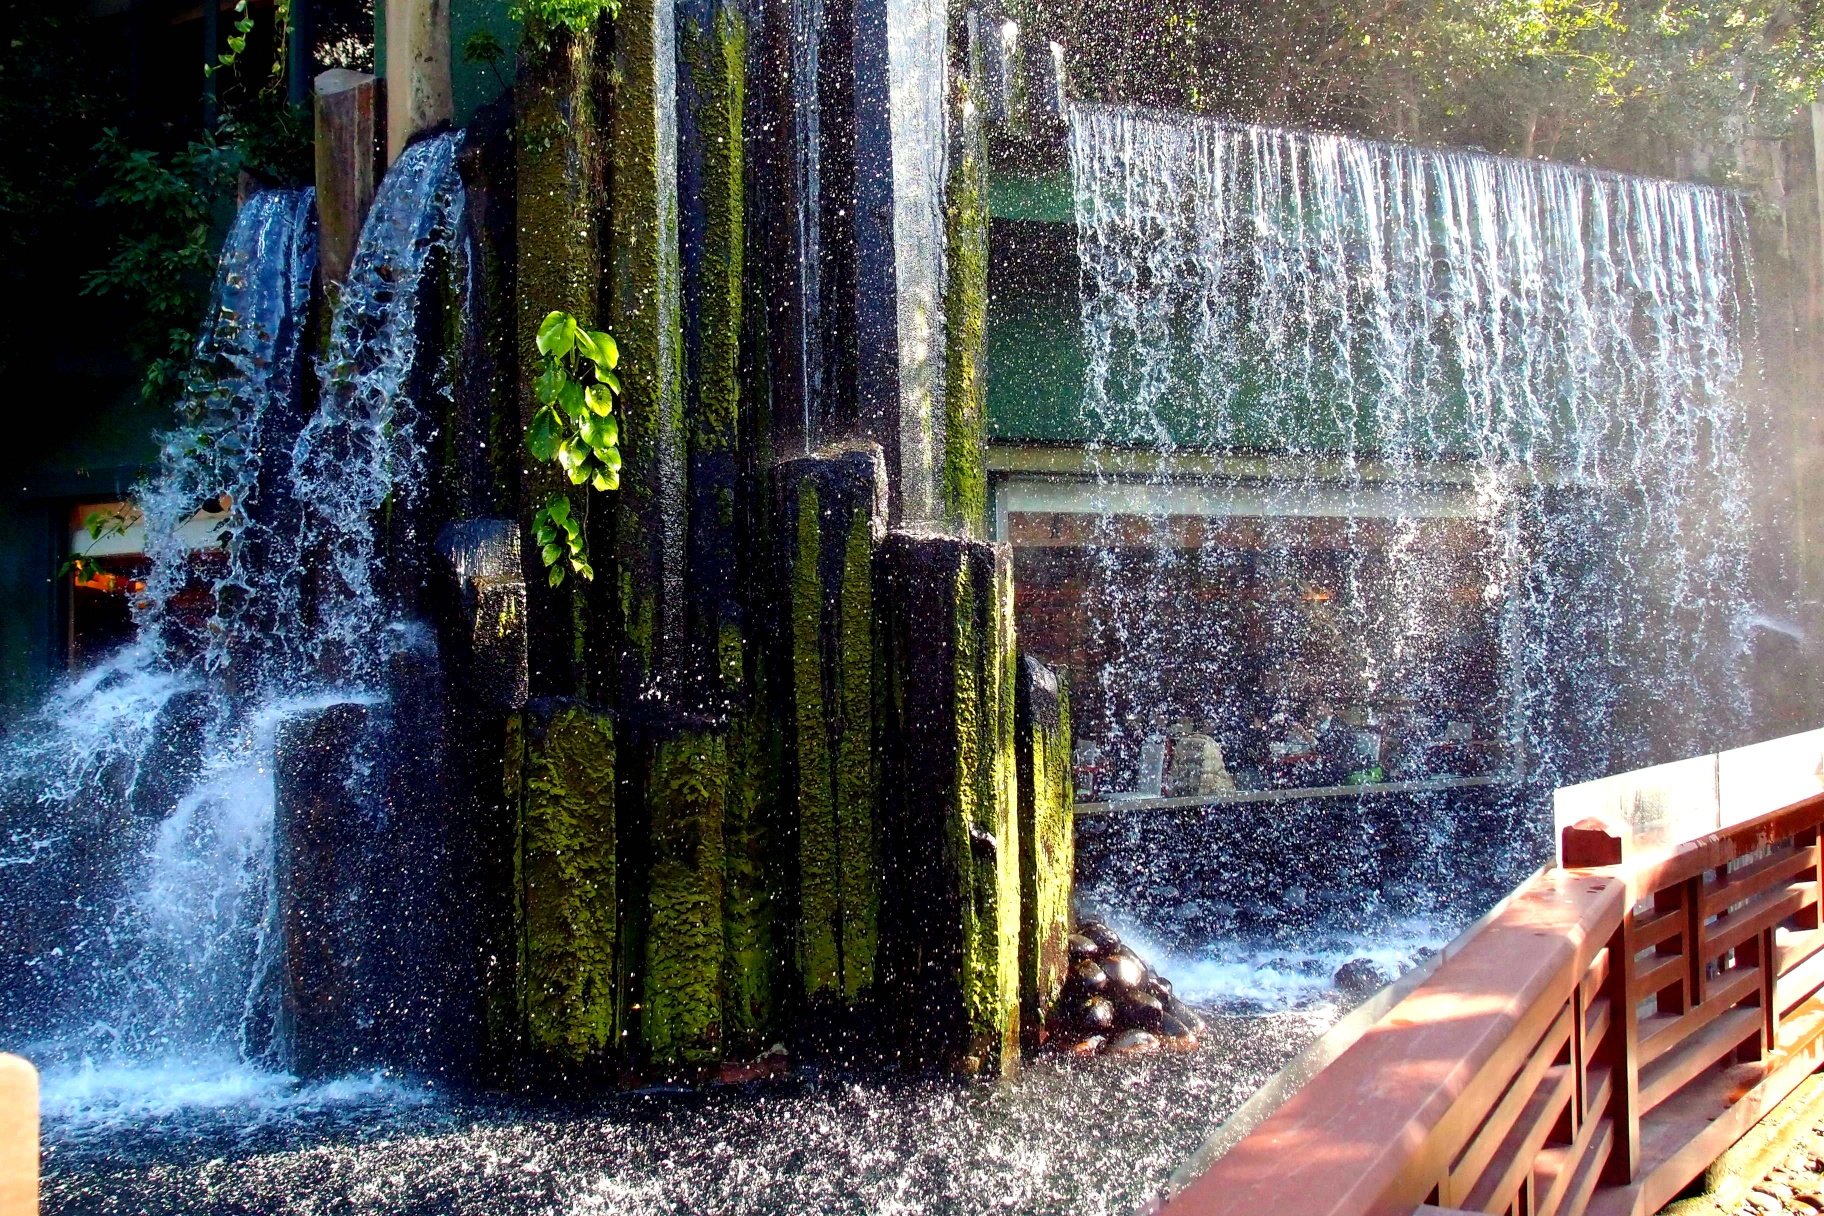 Behind the waterfall is a veggie restaurant run by the Nuns